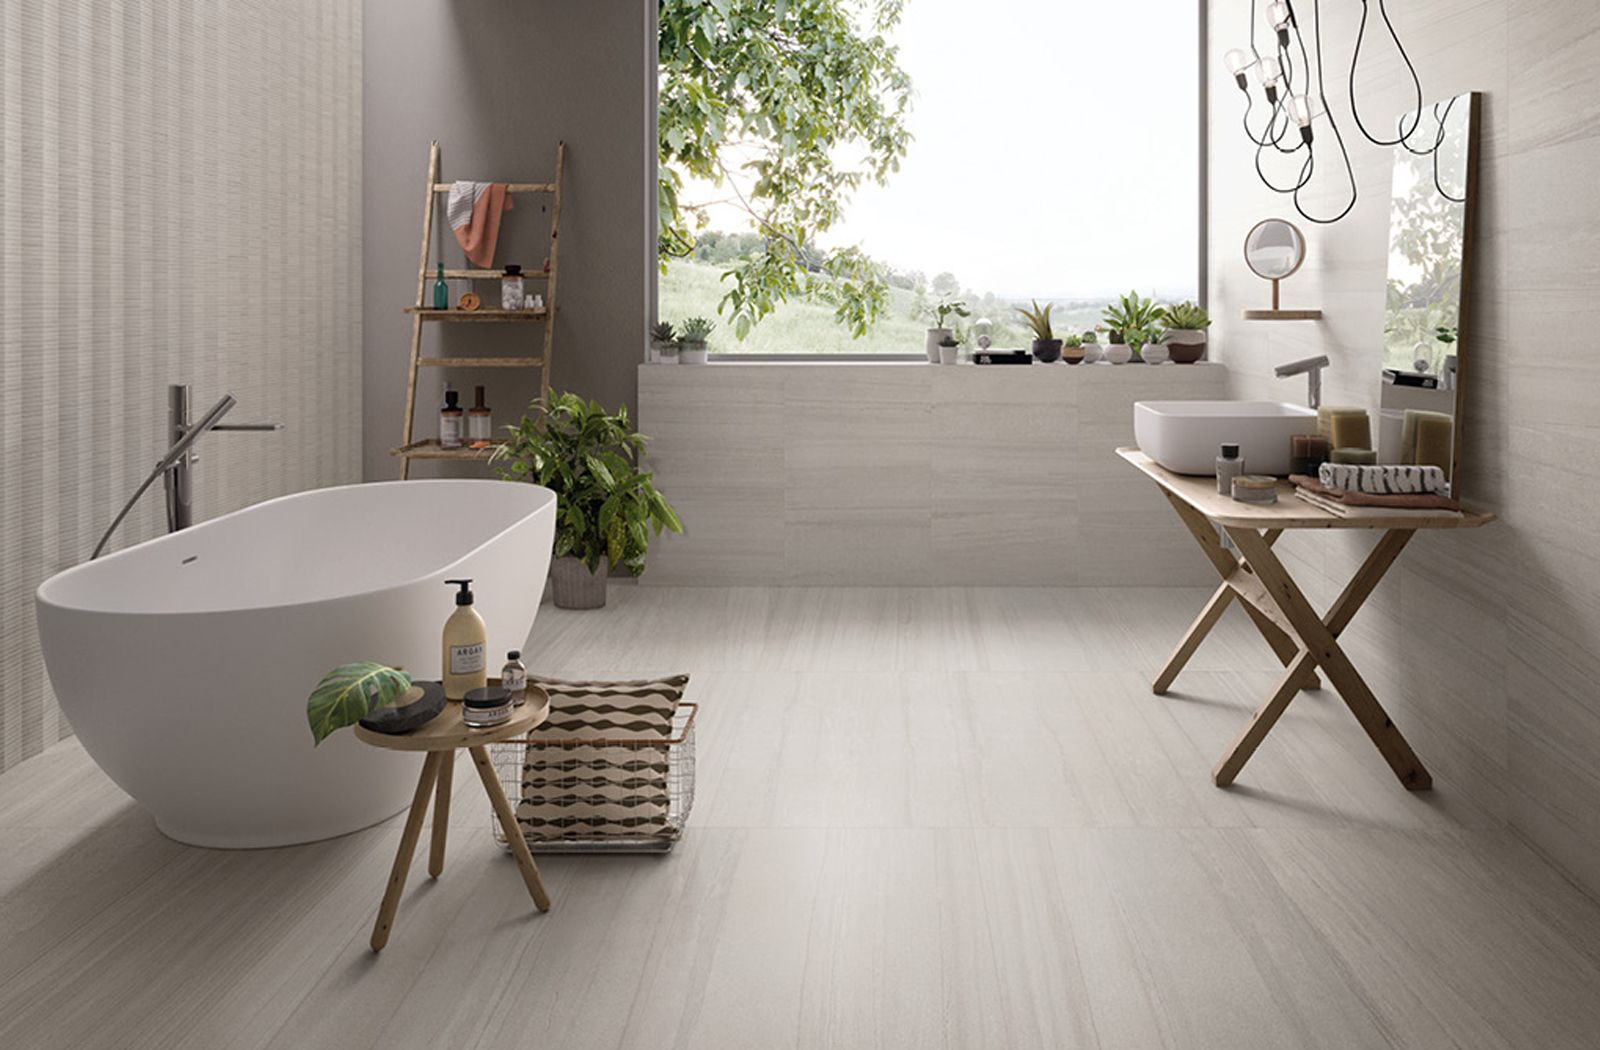 Modern Scandinavian bathroom sanctuary with tiles from Ceramiche Provenza's  evo-Q collection.